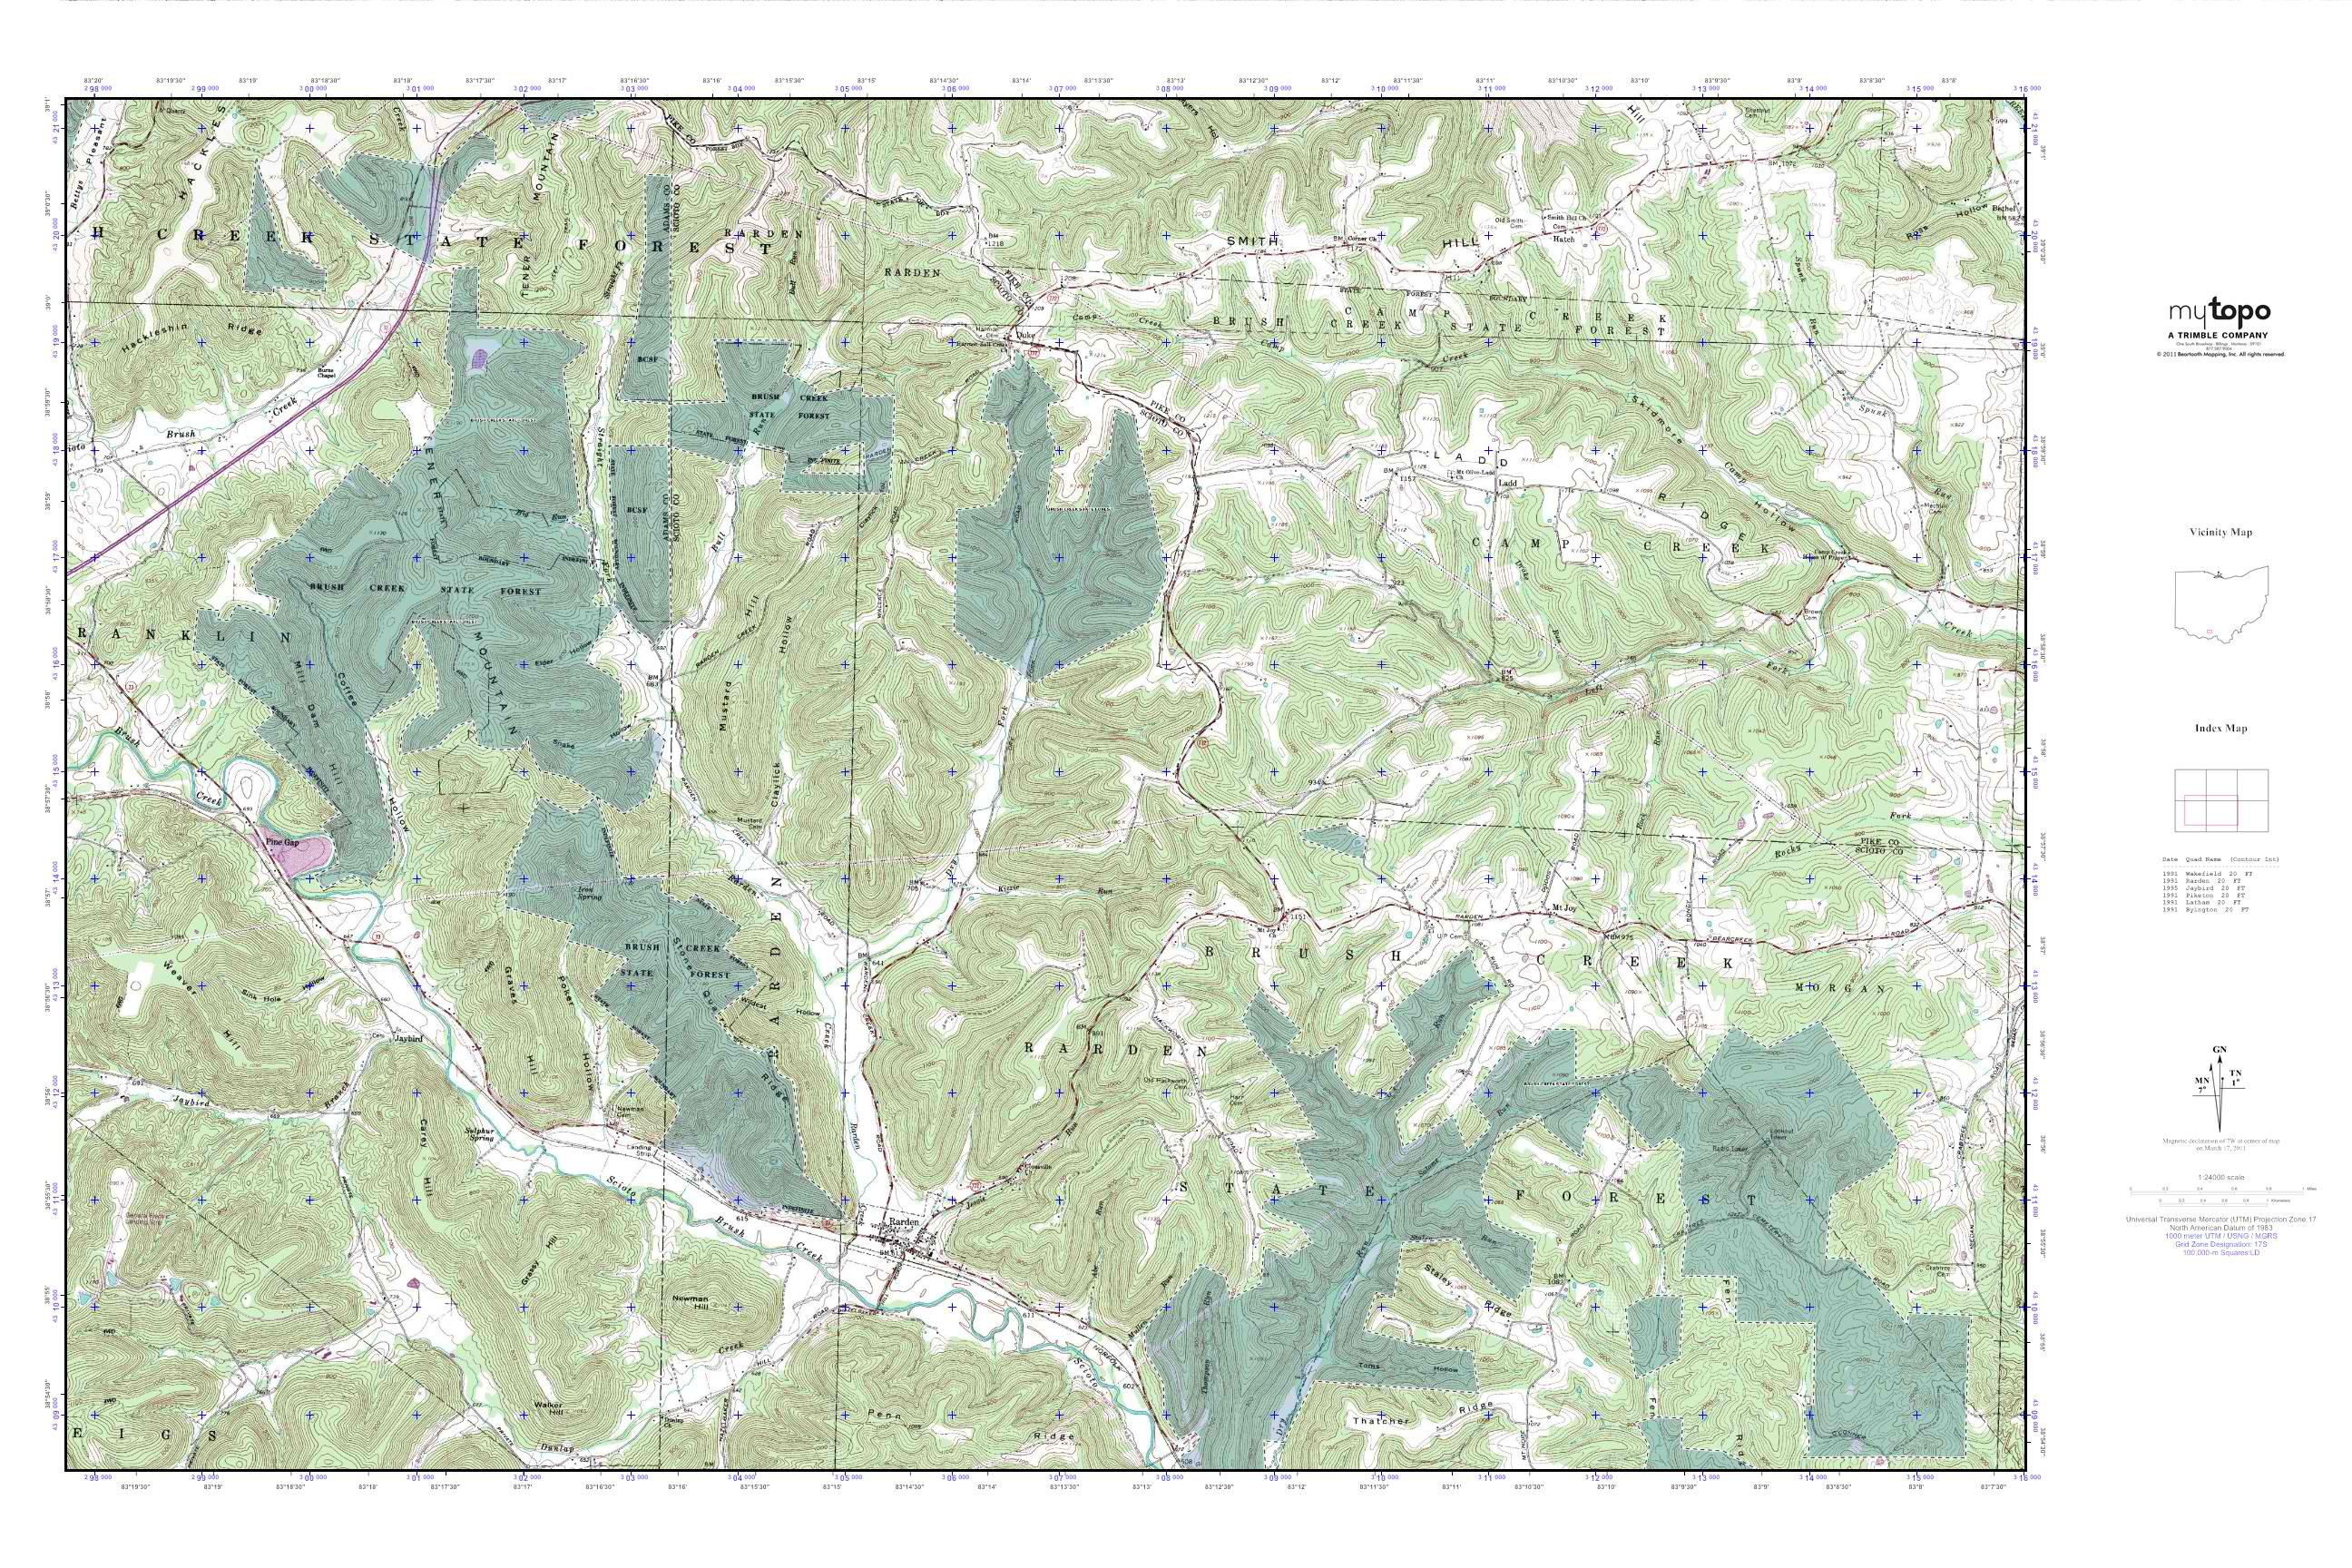 Links Wells Outdoors - Dnr topo maps